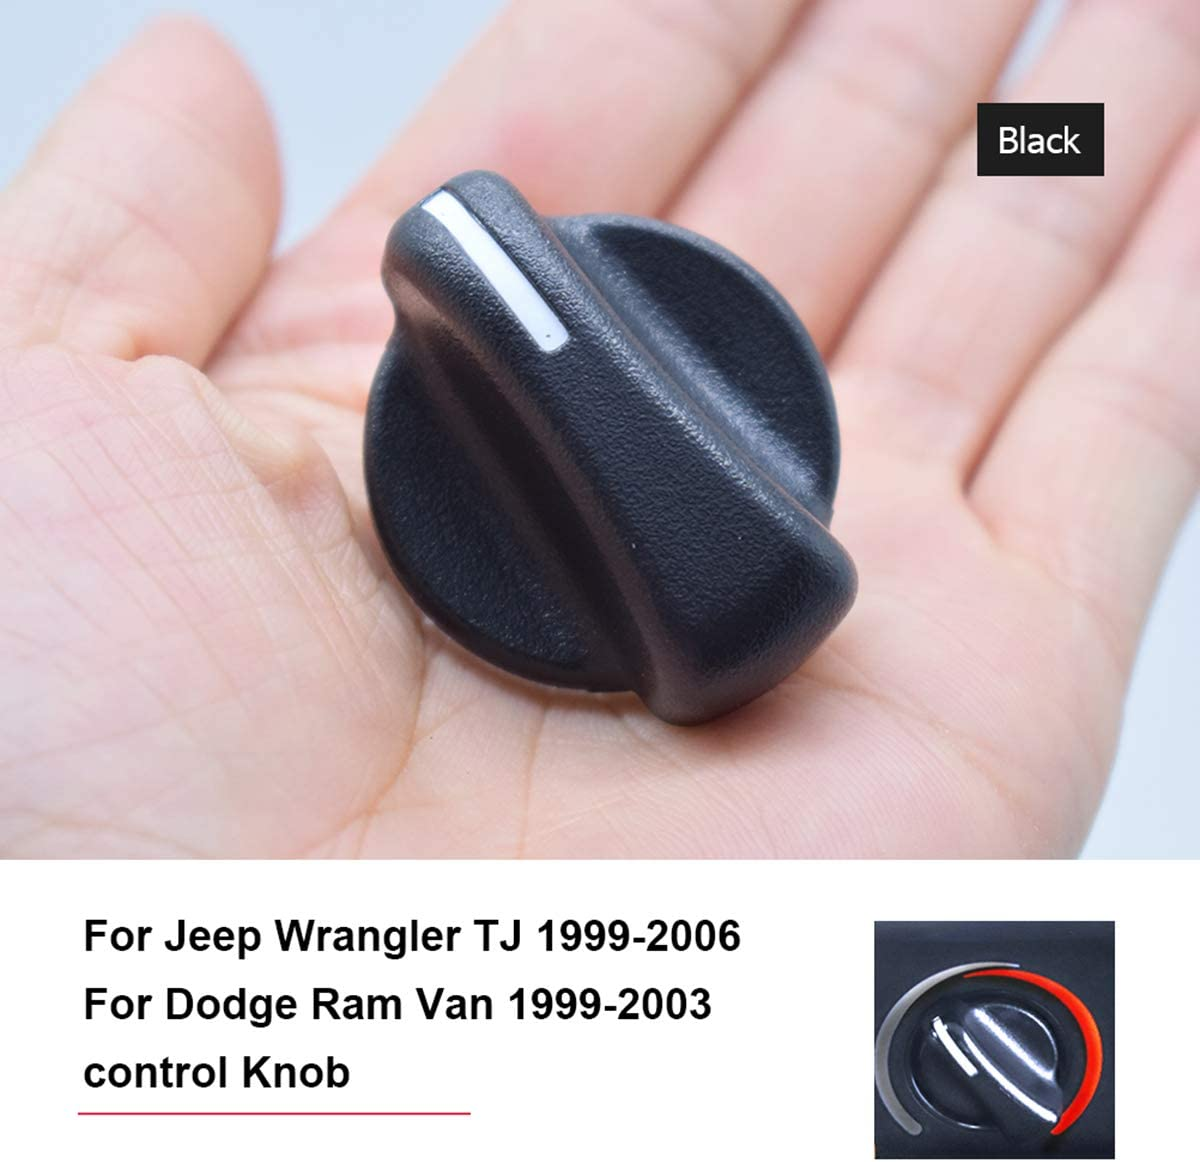 1PC Car A/C Heater Knob AC Air Conditioner Climate Control Blower Fan Knob Panel Switch Buttons Sticker Dials cover For Jeep Wrangler TJ 1999-2006 For Dodge Ram Van 1999-2003 OE # 5011218AC 5183281AA